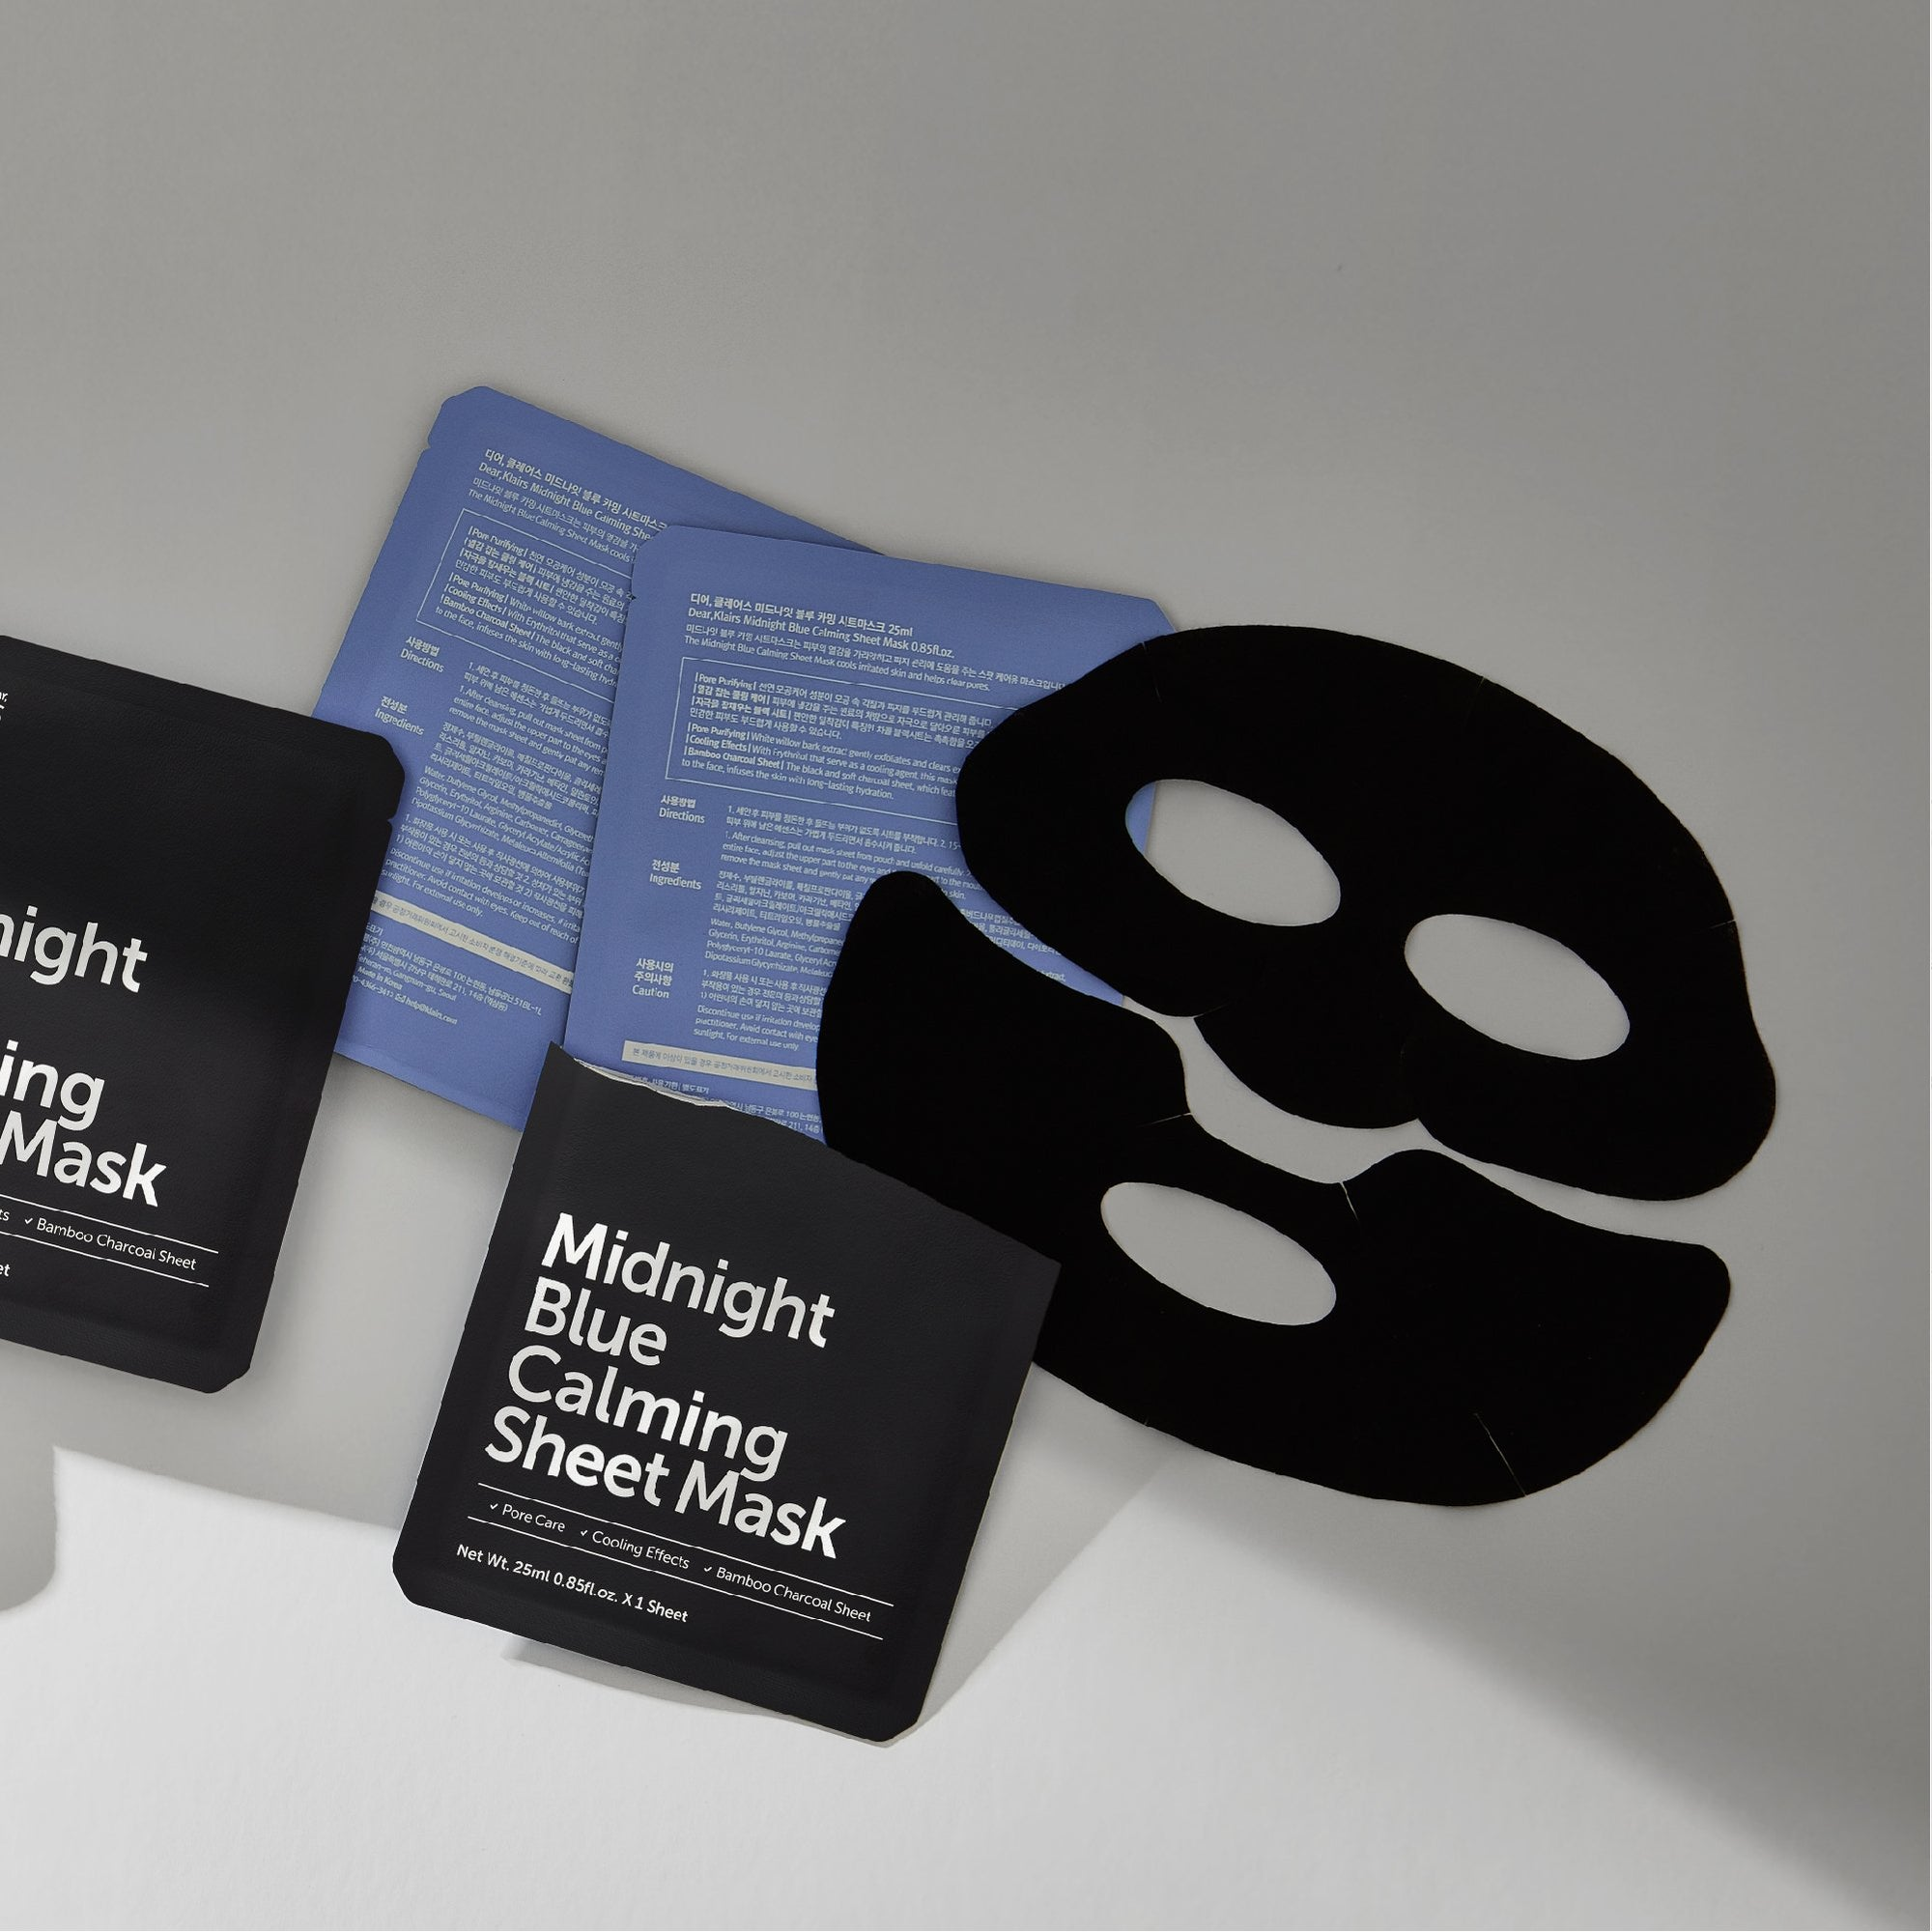 Midnight Blue Calming Sheet Mask by Klairs #12